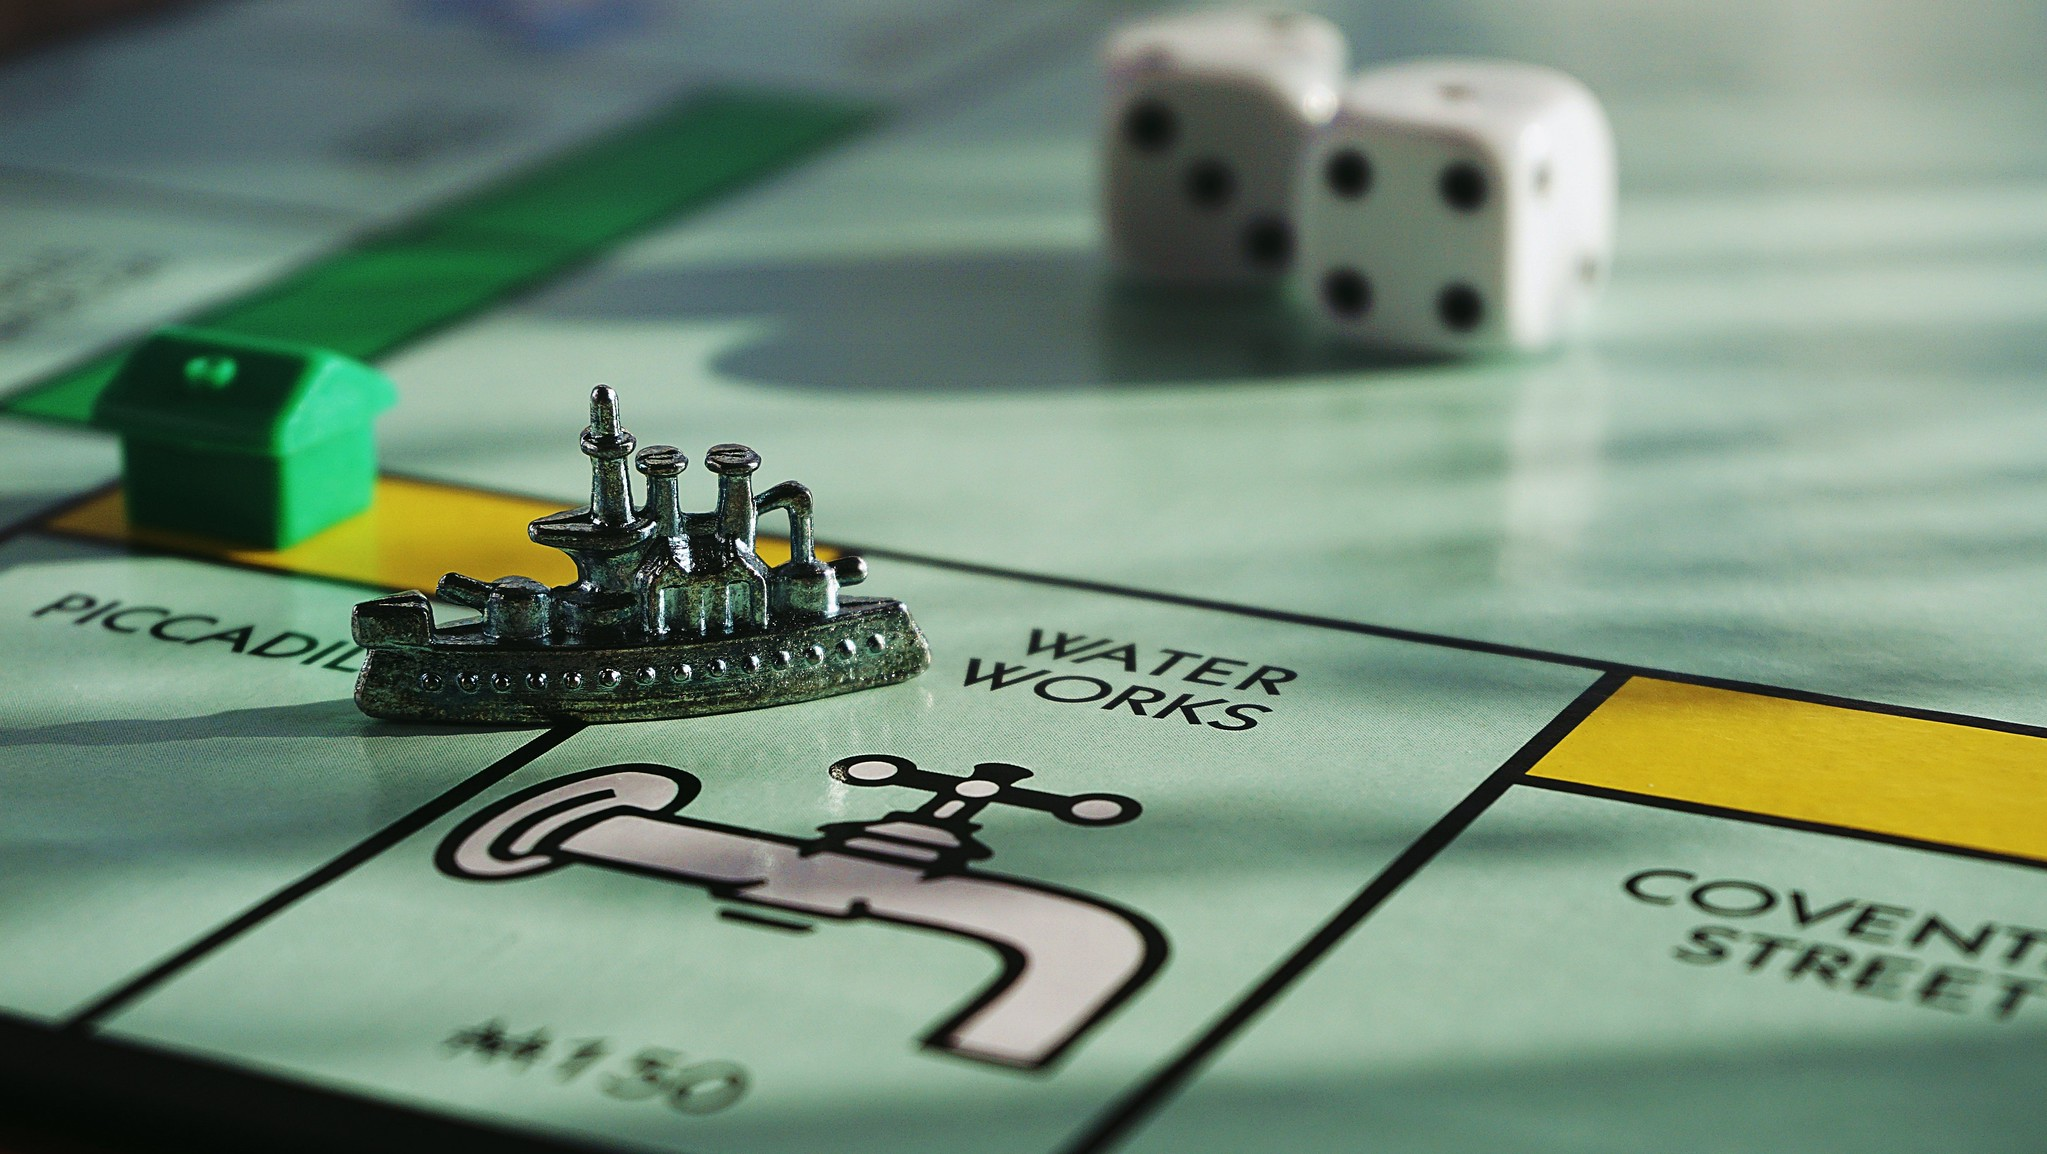 close-up shot of Monopoly board